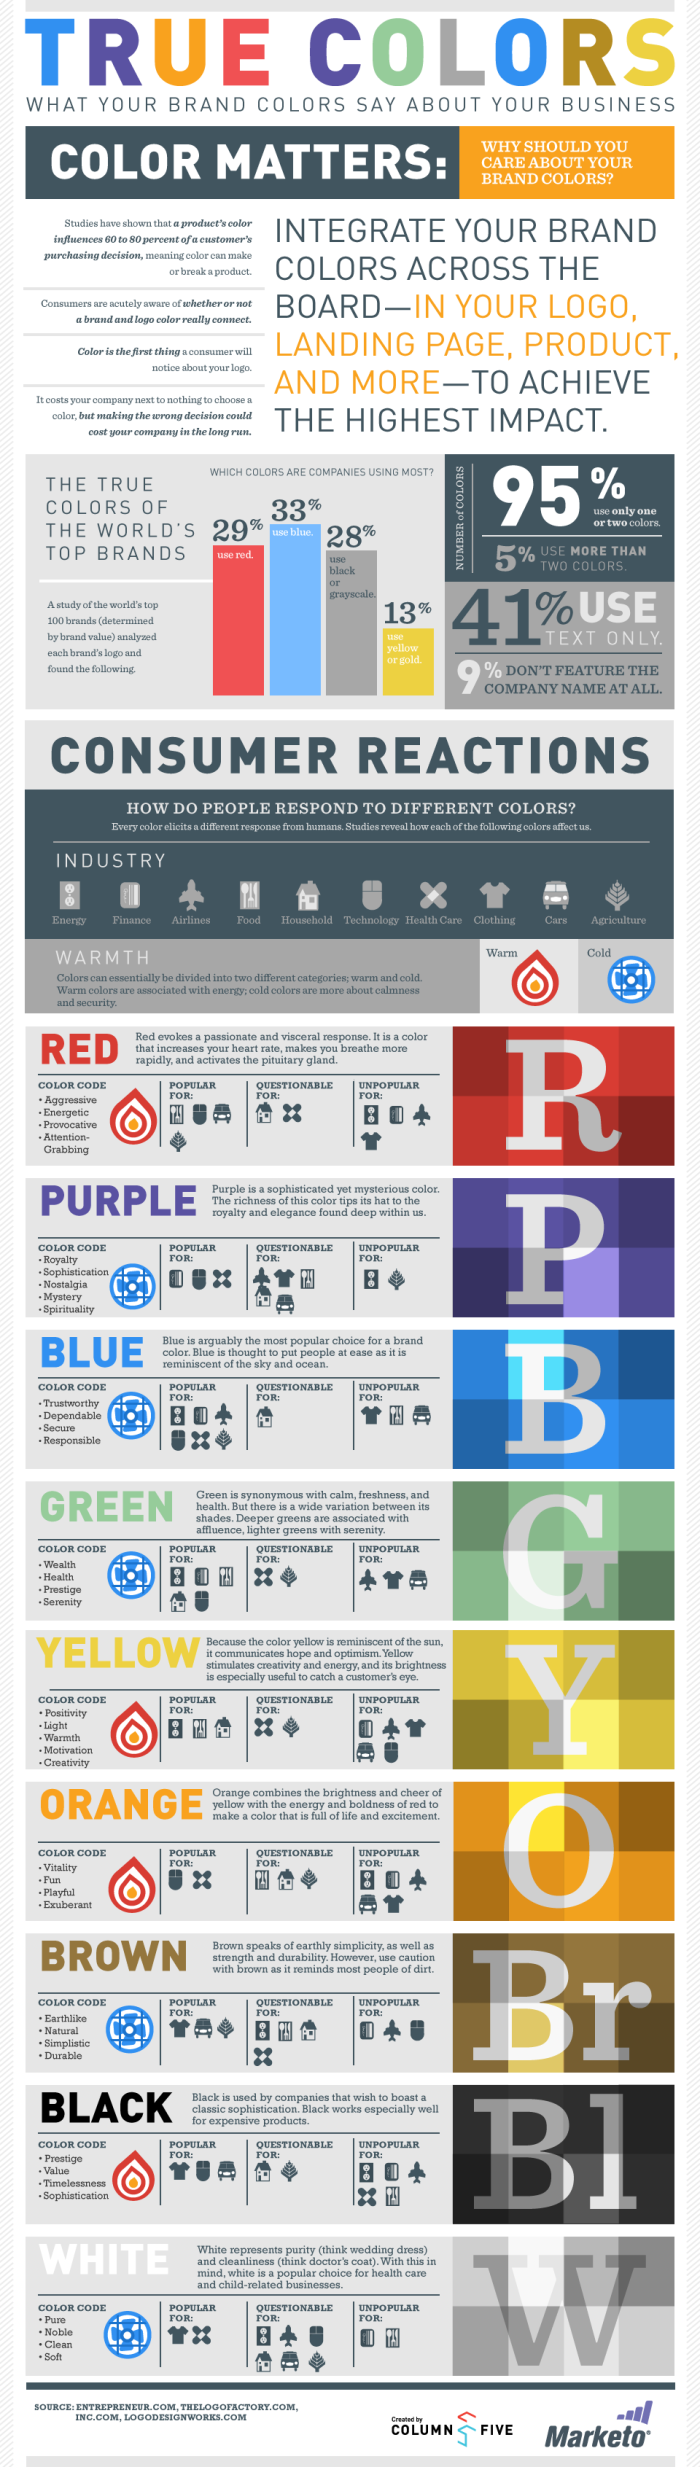 true-colors-what-your-brand-colors-say-about-your-business_5029198e9f365